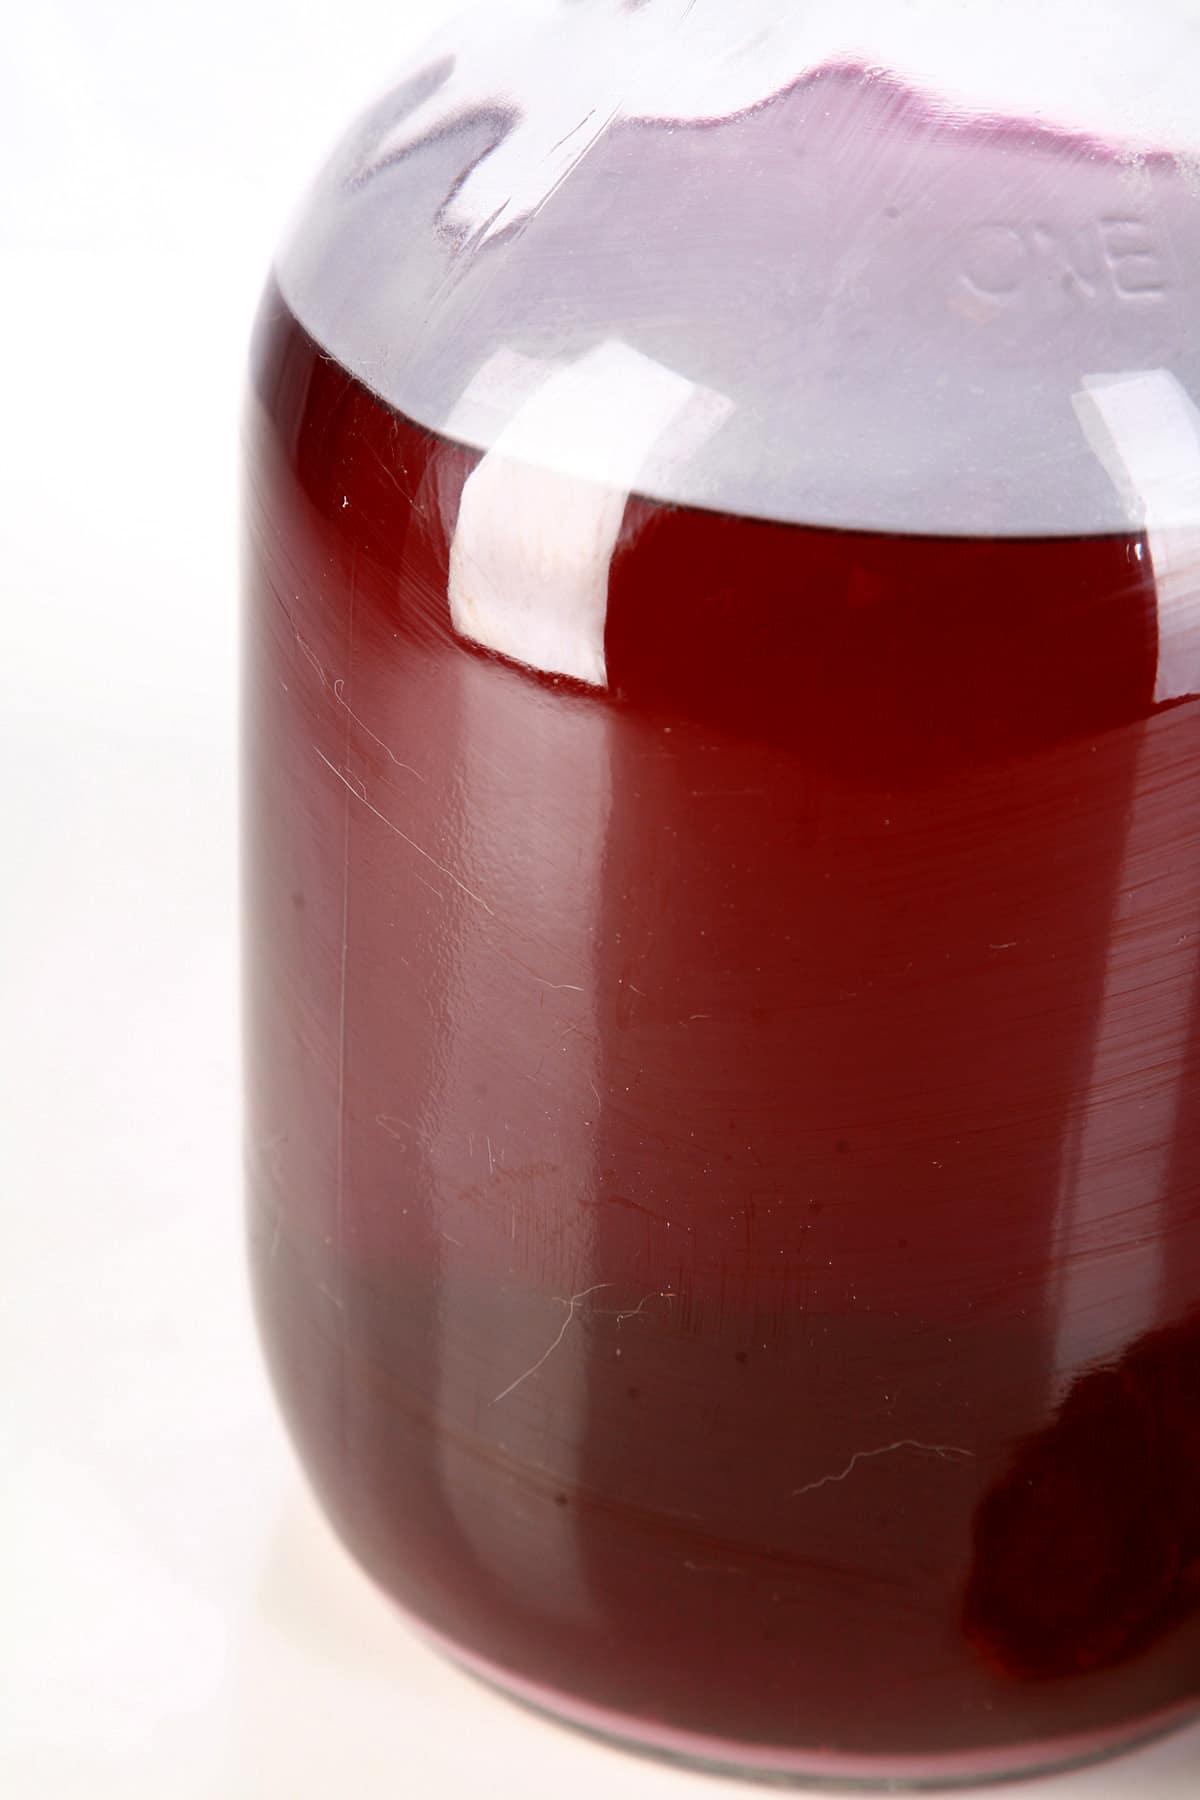 A glass carboy of homemade ube wine.